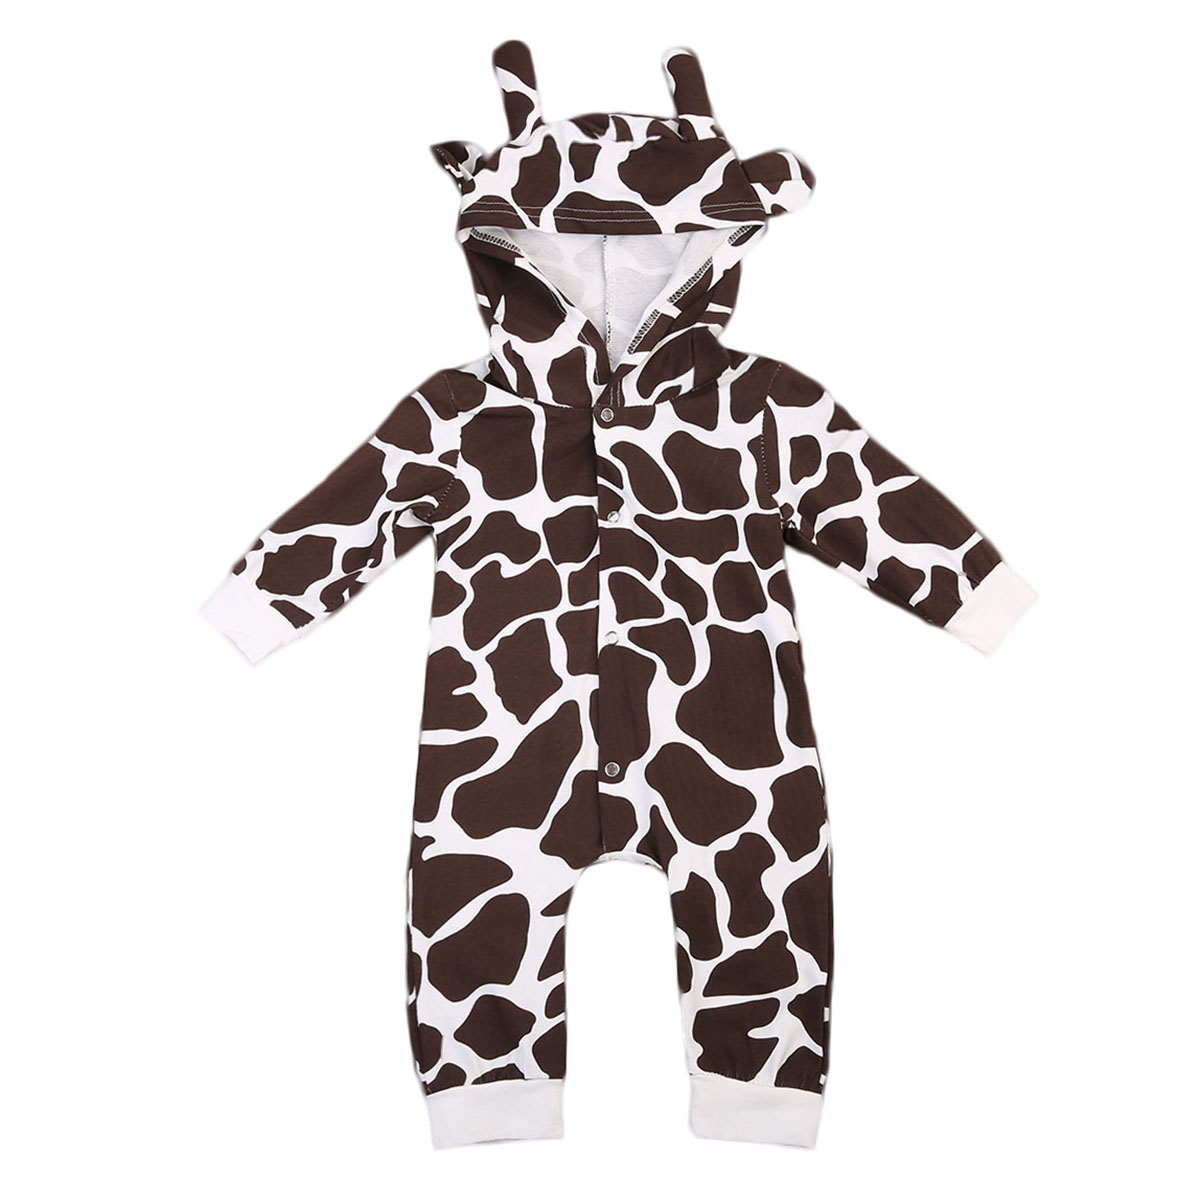 Babies Milk Cow Hooded Rompers New Toddler Infant Baby Girl Boy 3D Ear Romper Cute Joli Playsuit Outfits Costume Clothes Pjs